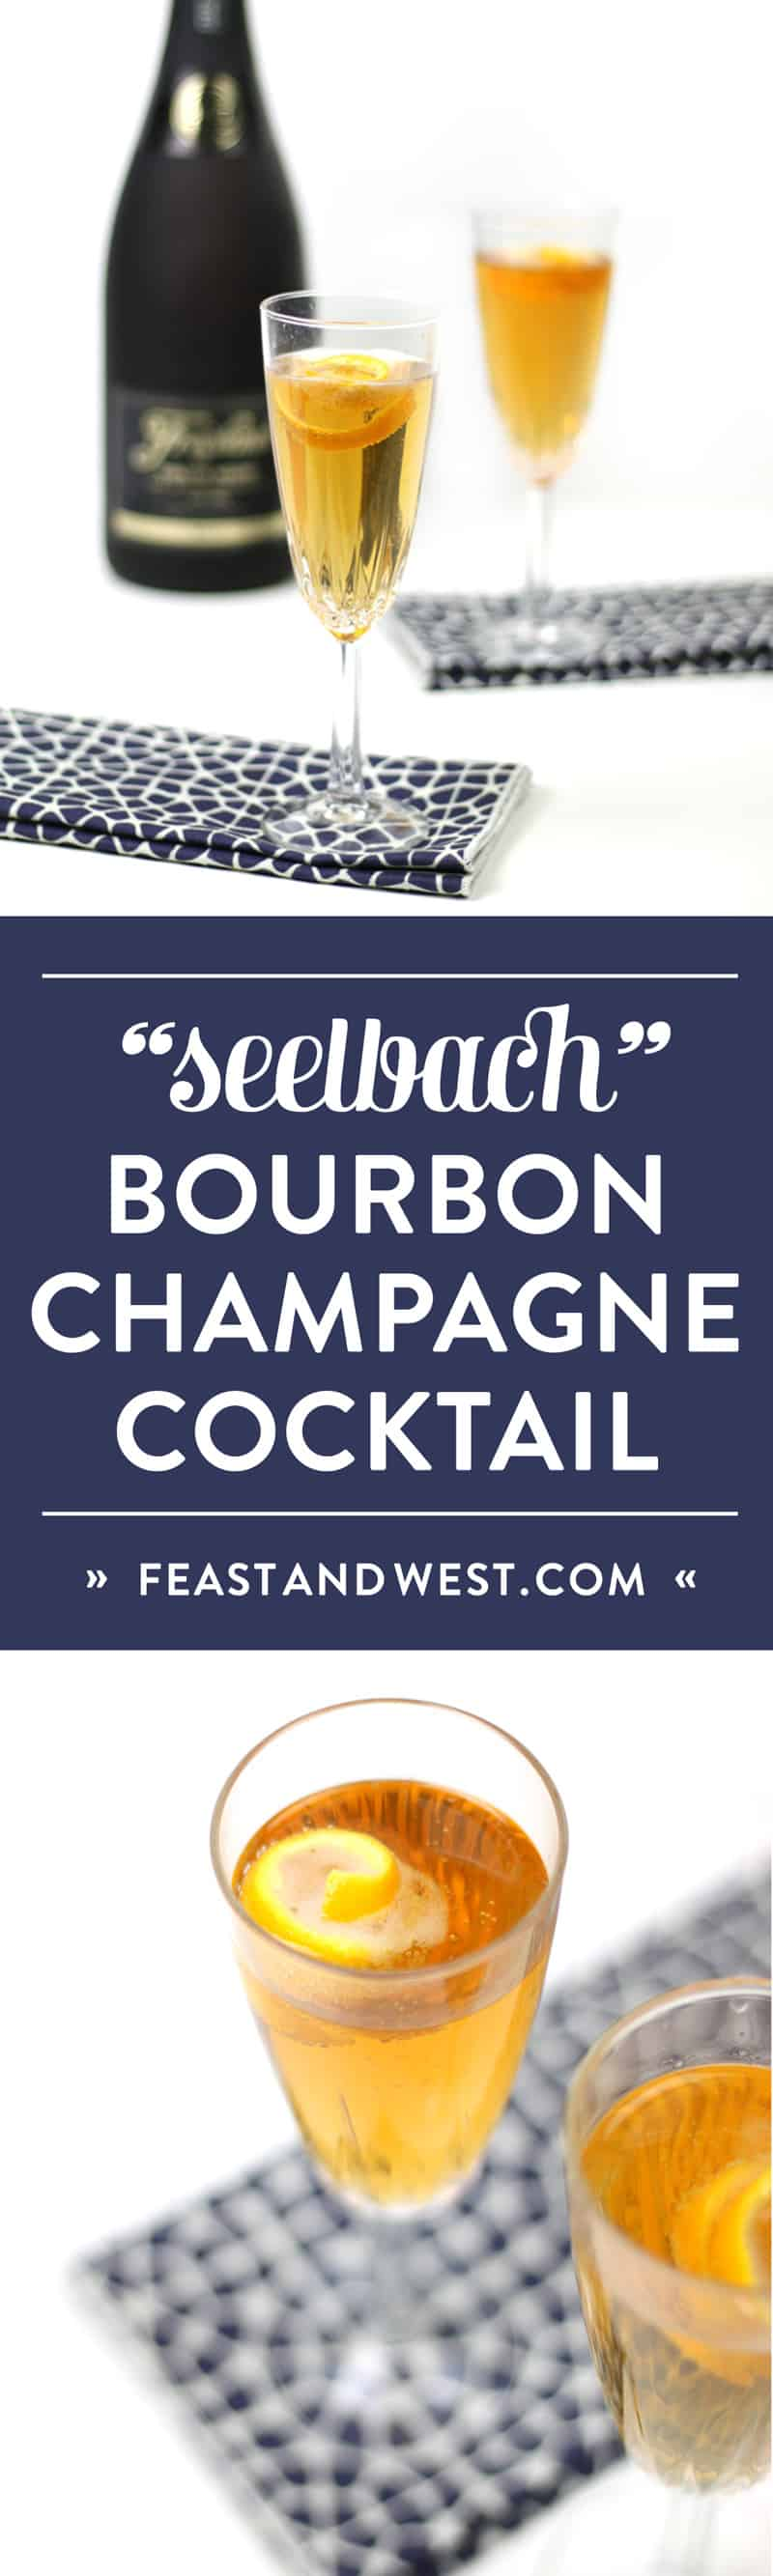 The storied Seelbach Bourbon Champagne Cocktail is a glitzy cocktail worthy of celebration! The marriage of bourbon whiskey, champagne, orange and cocktail bitters is a festive way to toast both the holidays and the new year. Cheers! (via feastandwest.com)